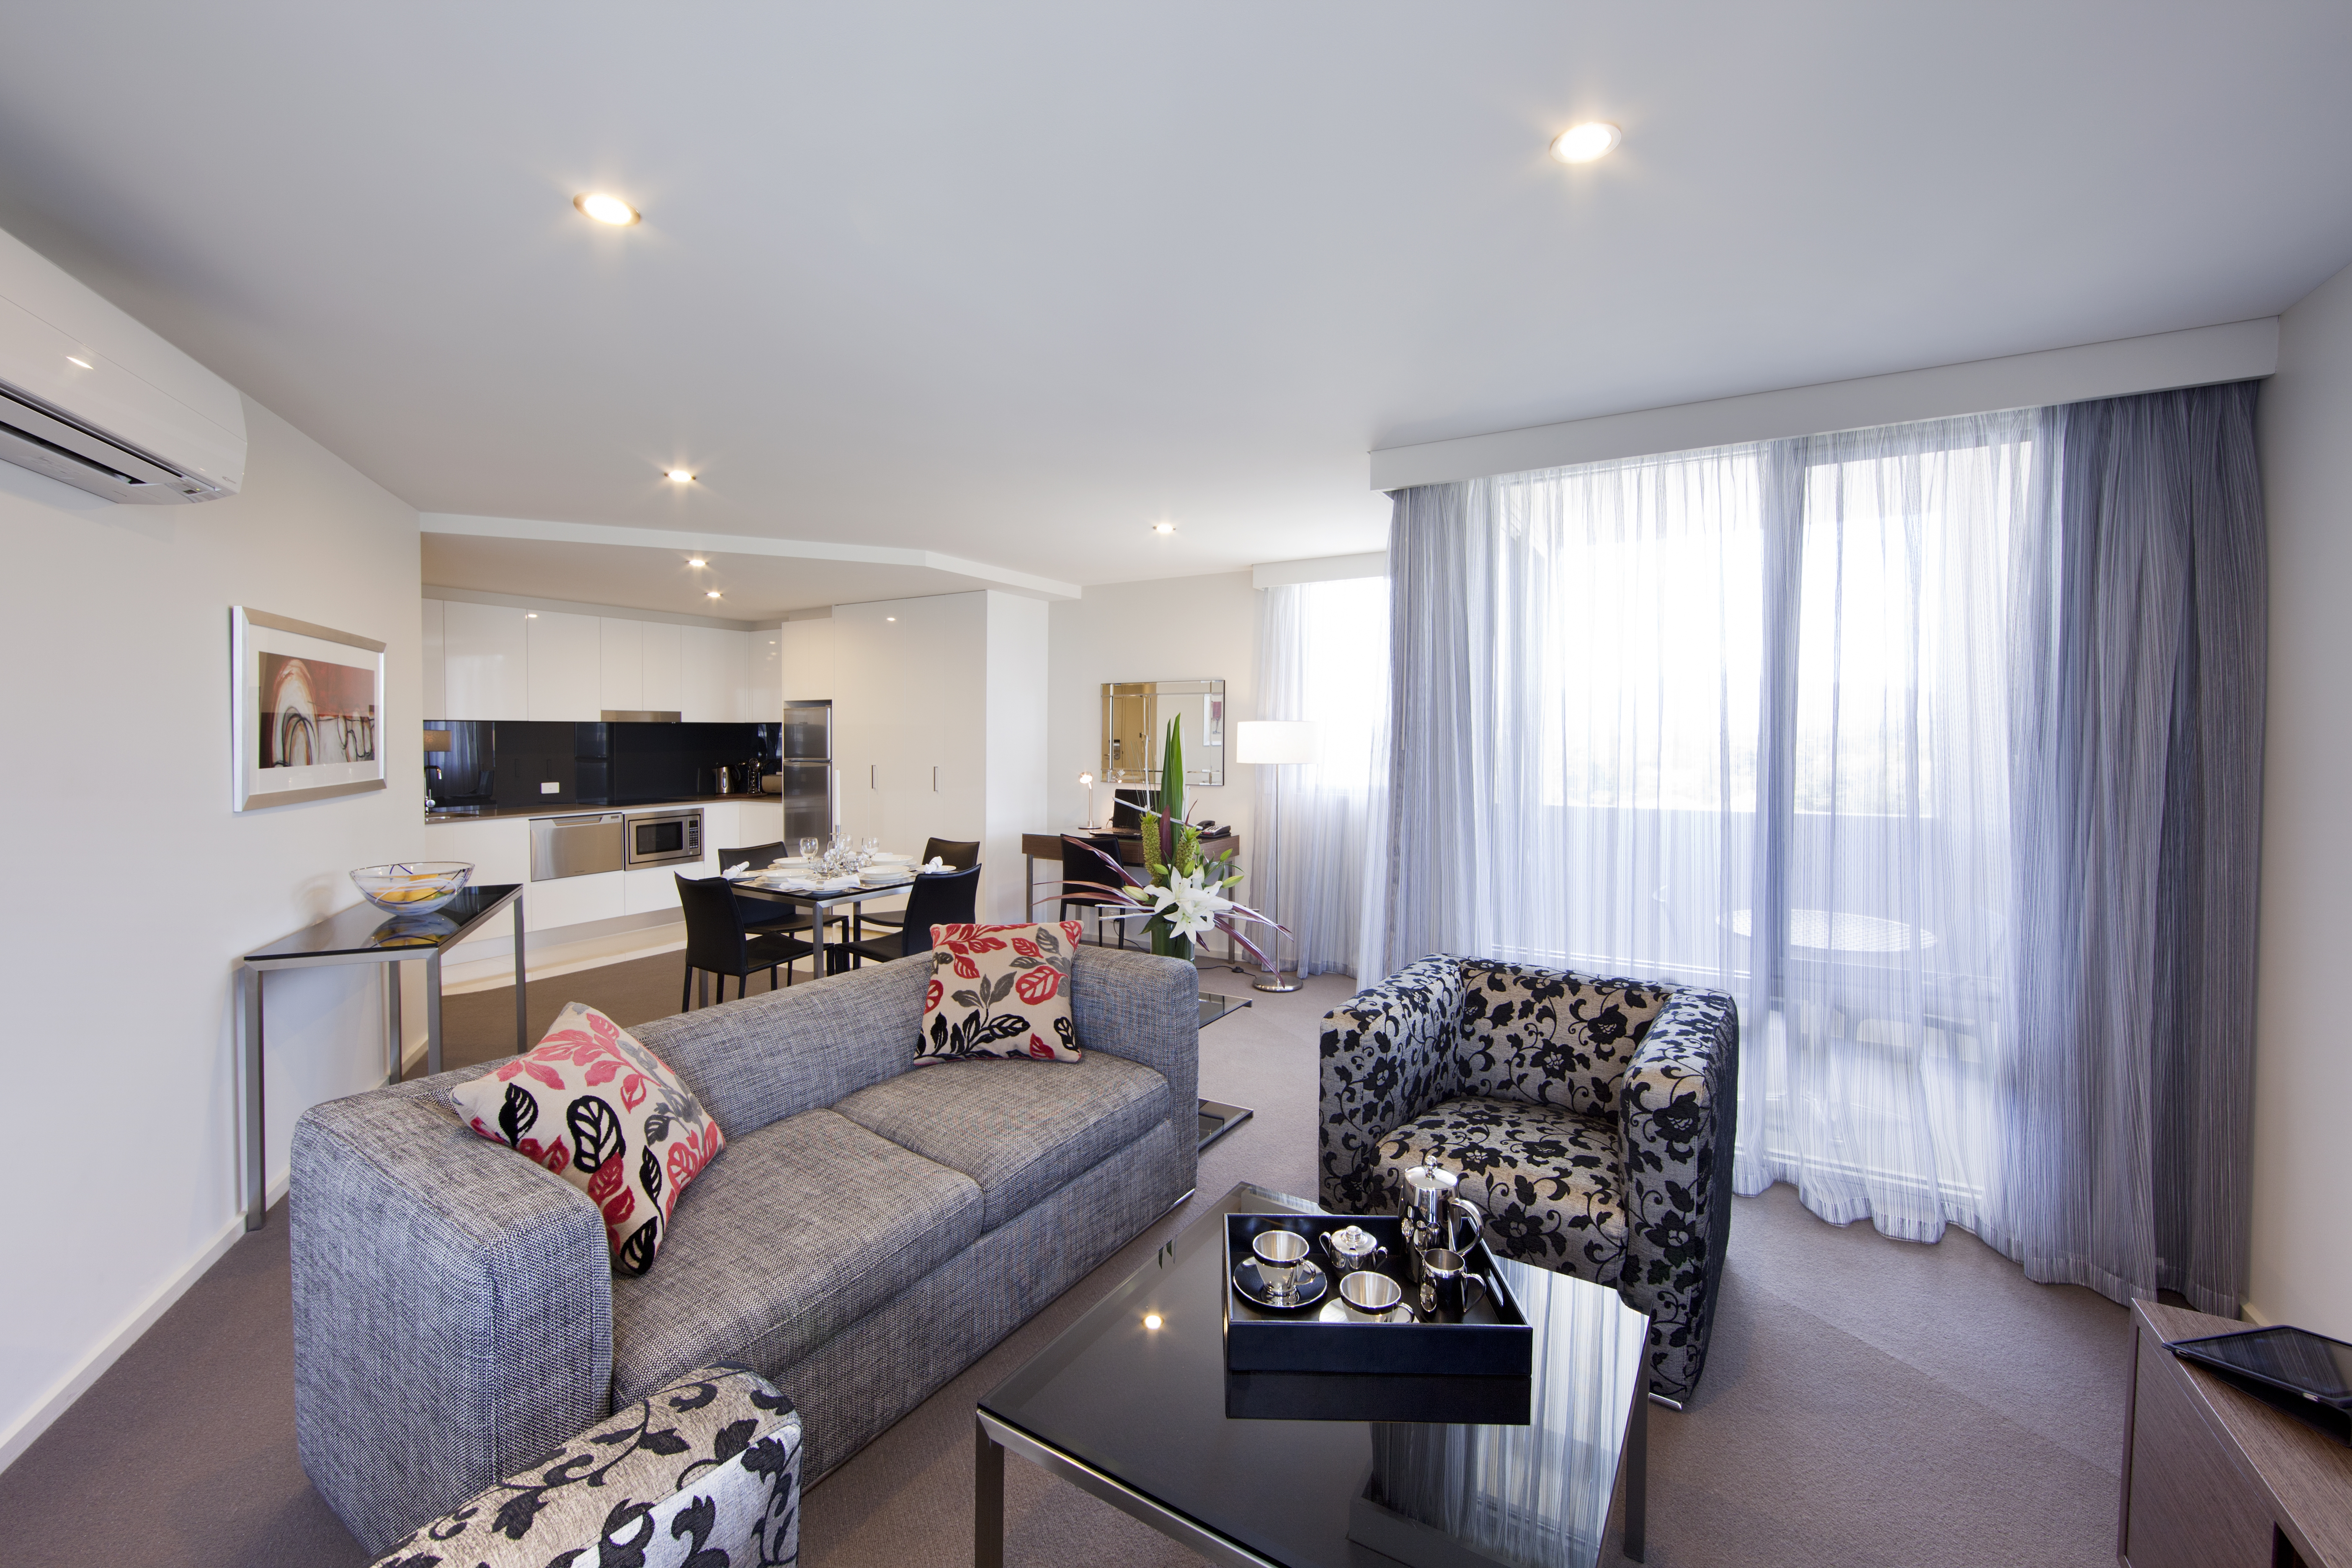 Aria Hotel Canberra - Accommodation in Surfers Paradise